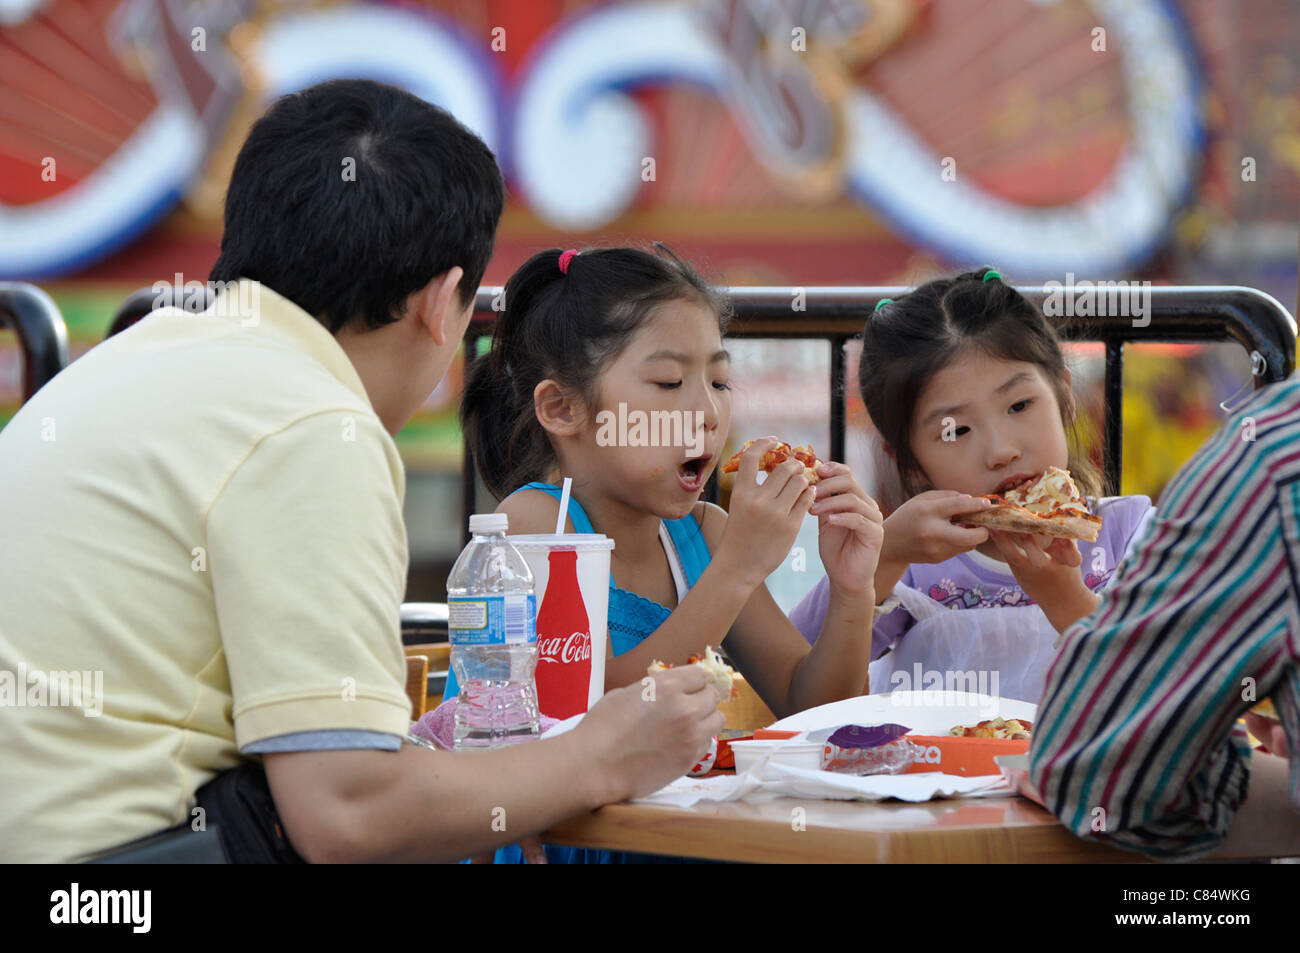 Family outdoor dining on Pizza and Soft Drinks - Stock Image